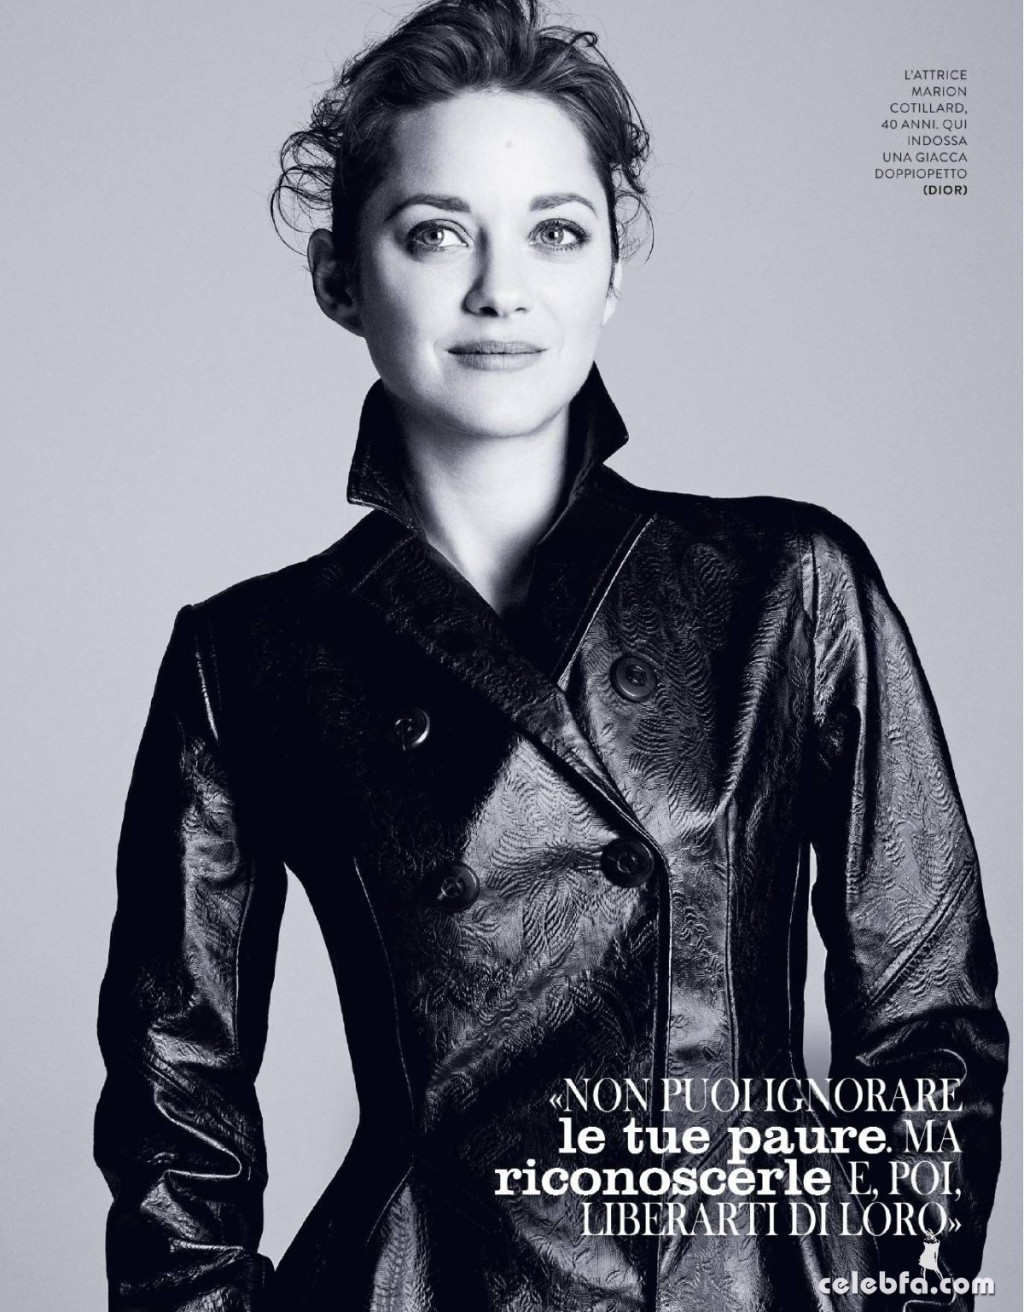 marion-cotillard-in-grazia-magazine-italy-january-2016 (3)